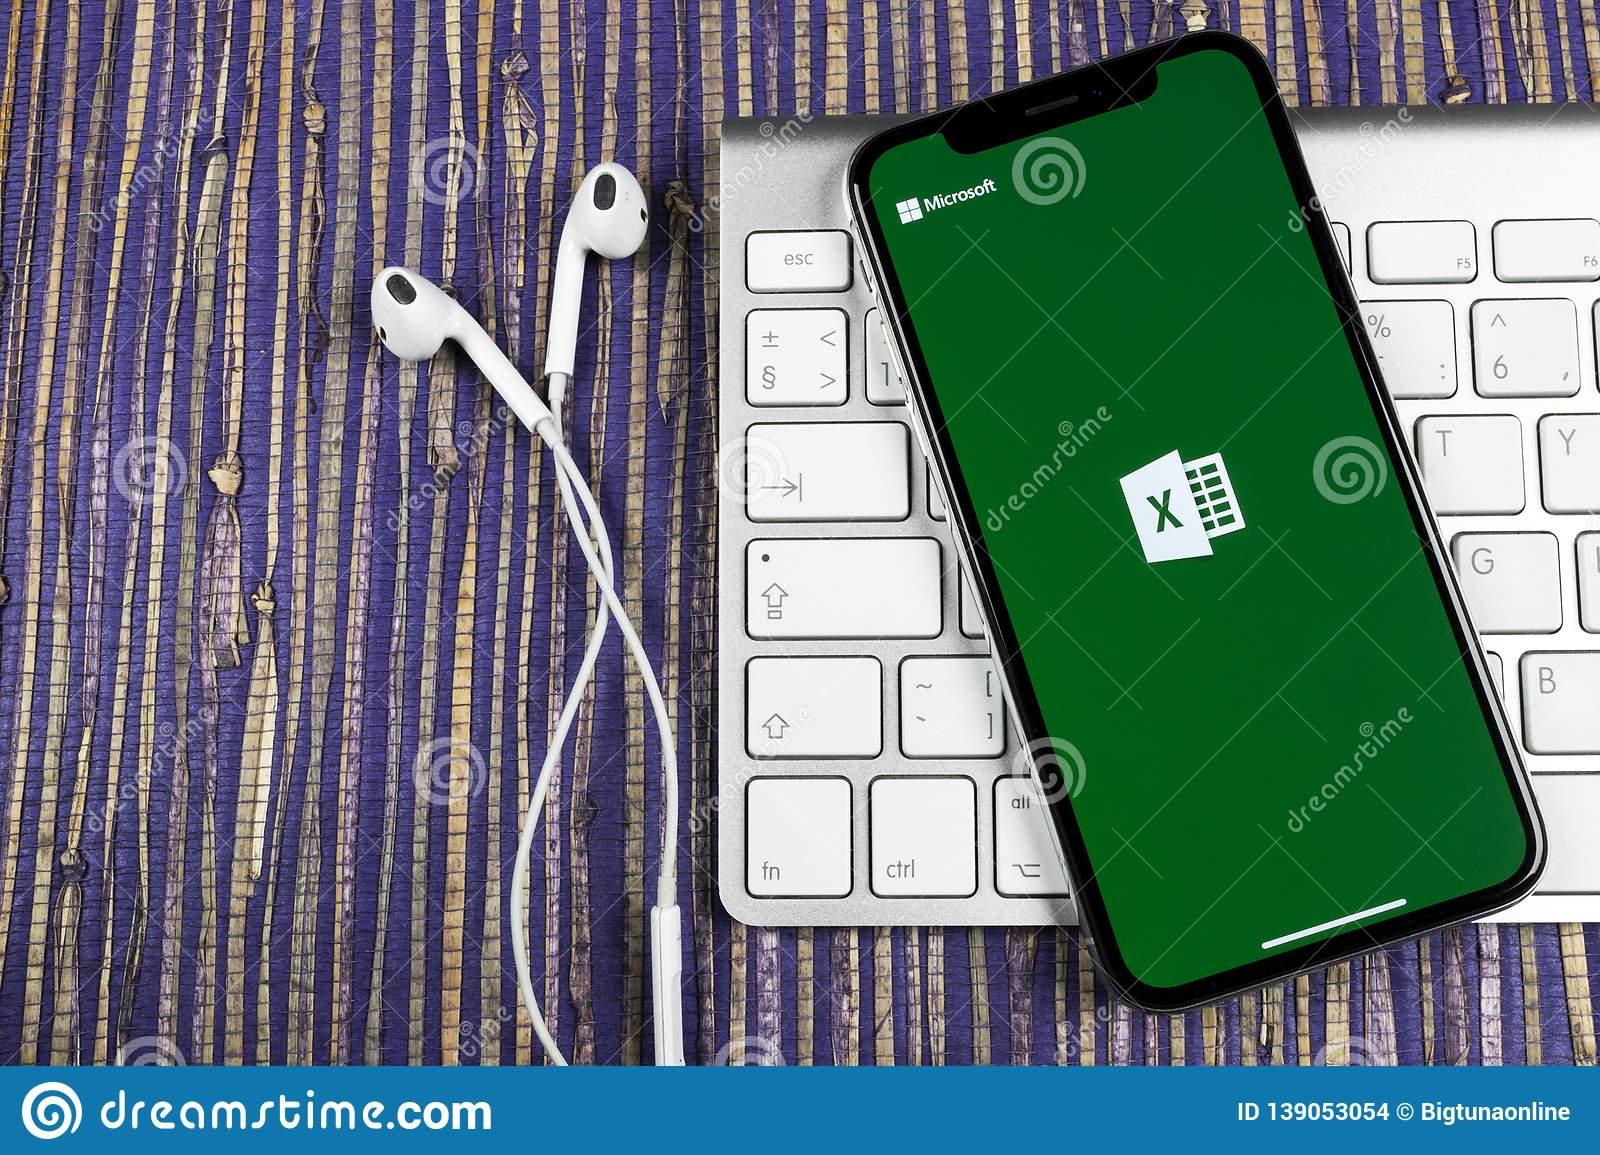 Microsoft Excel application icon on Apple iPhone X screen close-up. Microsoft office Excel app icon. Microsoft office on mobile ph